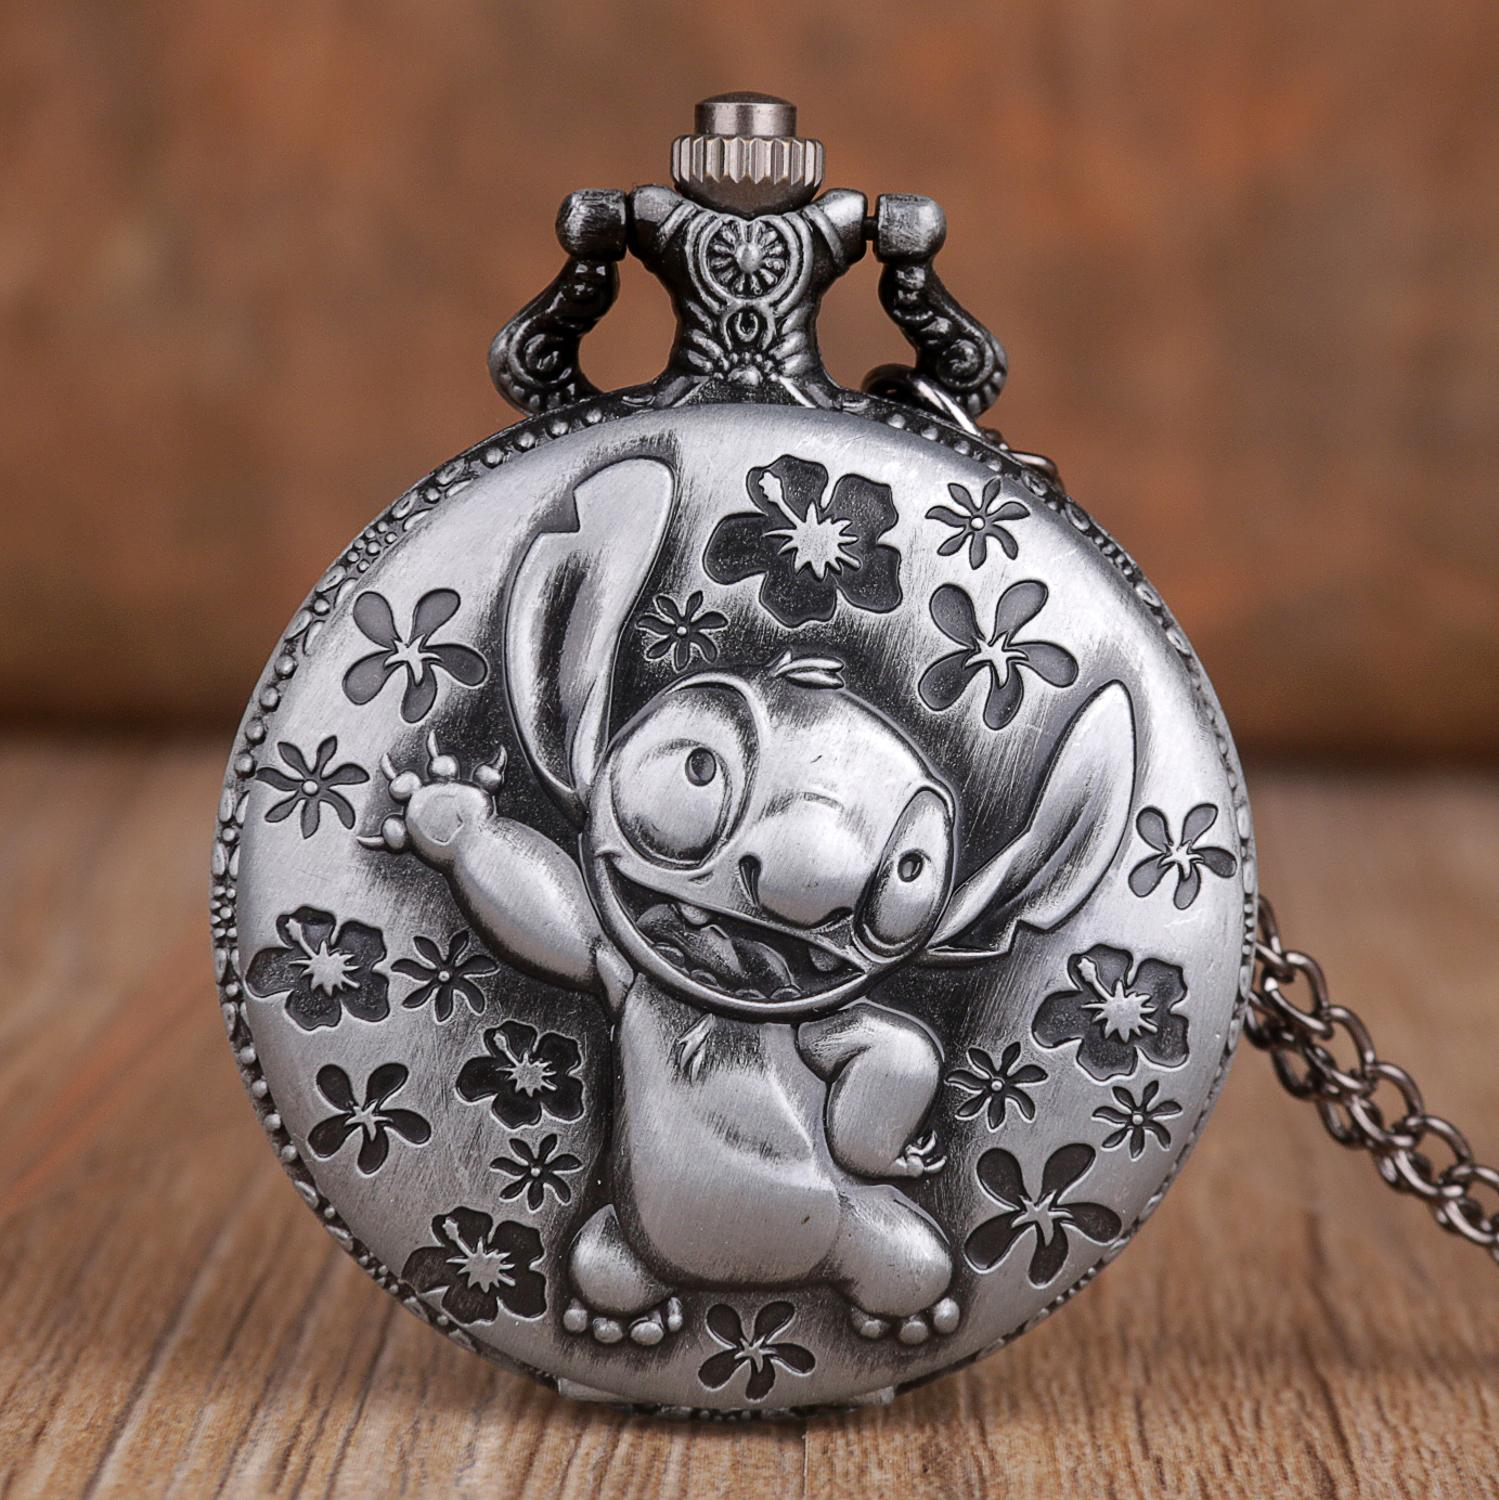 Vintage Retro Cute Lilo & Stitch Theme Pocket Watch With Pendant Necklace Chain Quartz Fob Watch Gifts For Boys Girls